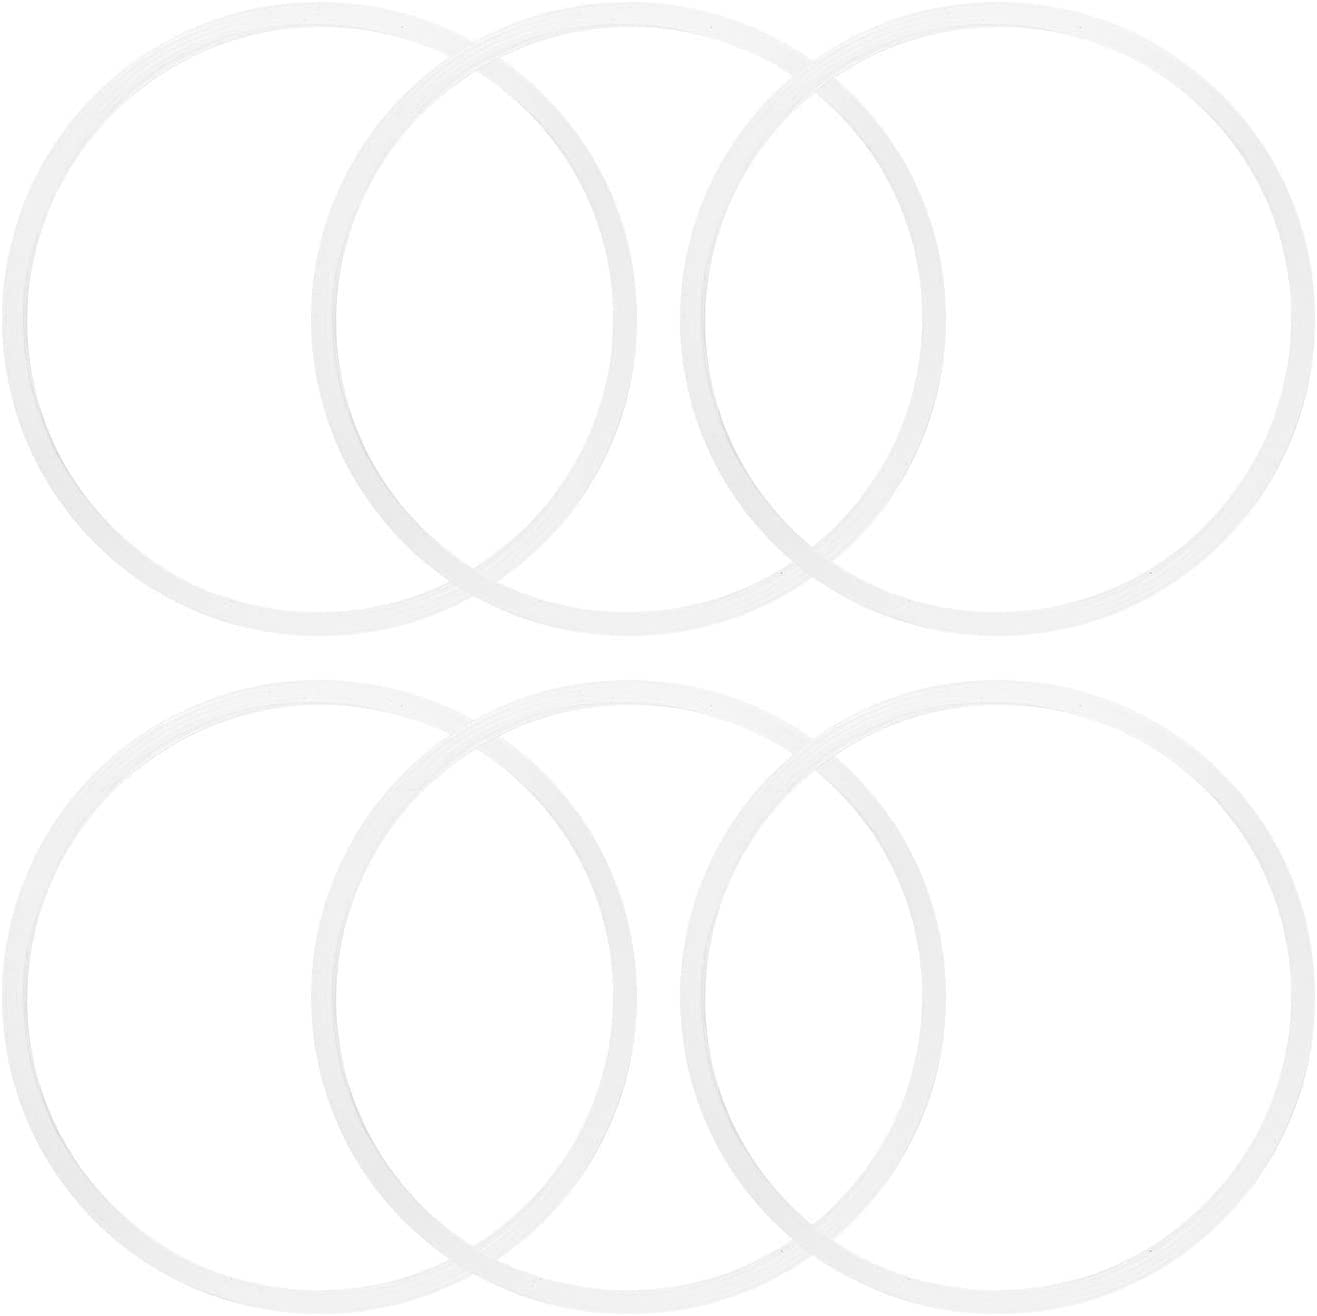 6 Pieces 10cm White Rubber Sealing Gaskets O-Ring Replacement Part Compatible with Nutri Ninja Juicer Blender Replacement Seals